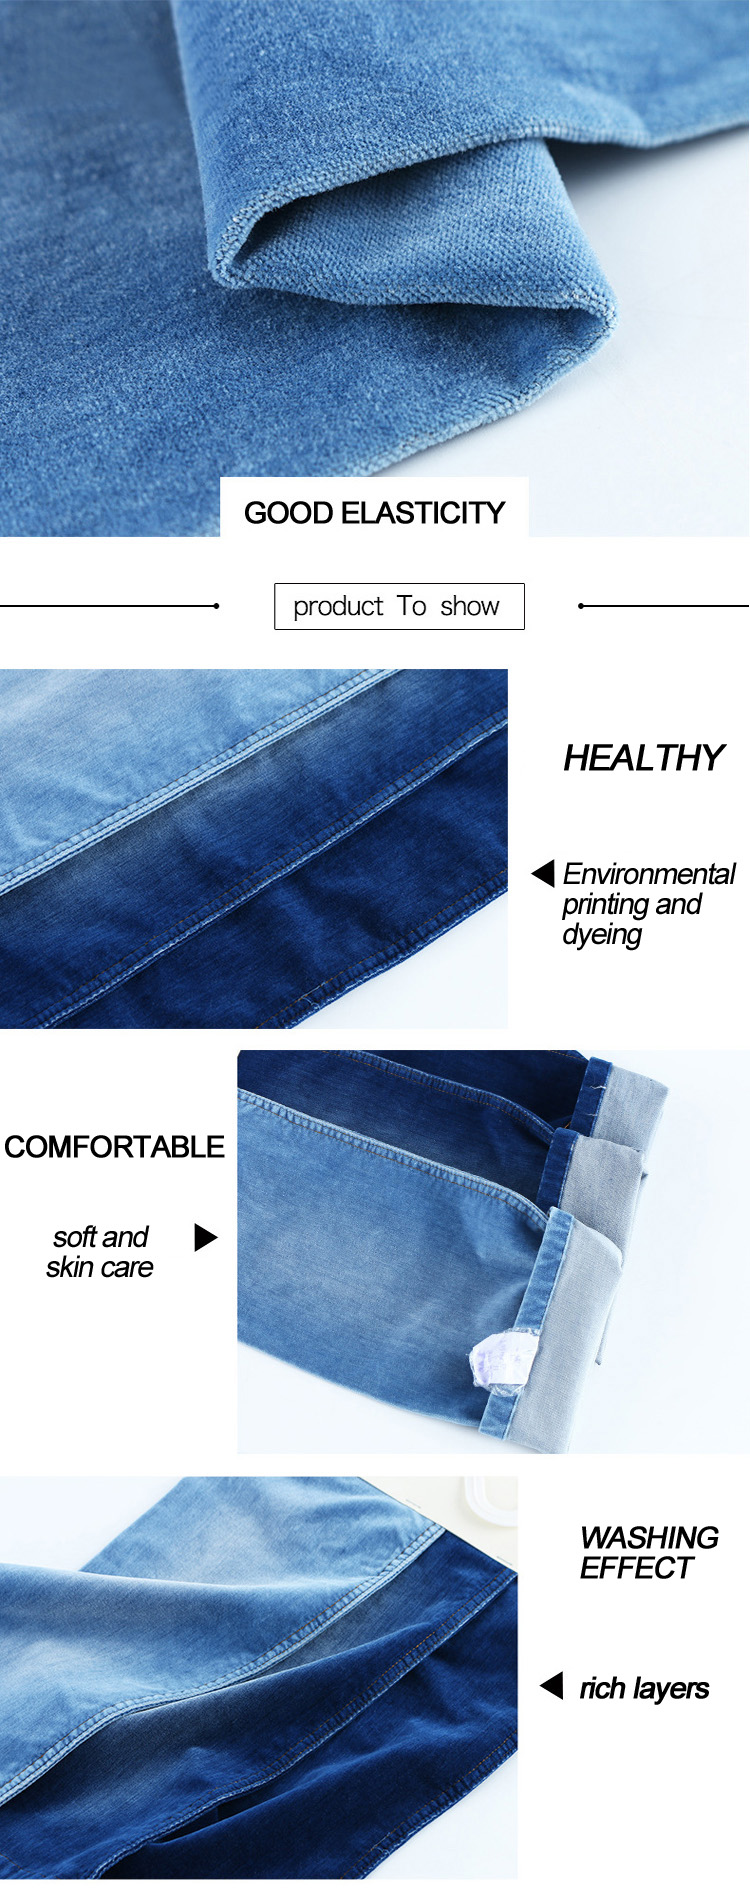 9oz heavy weight Spandex/Cotton fake knited denim fabric with good stretch